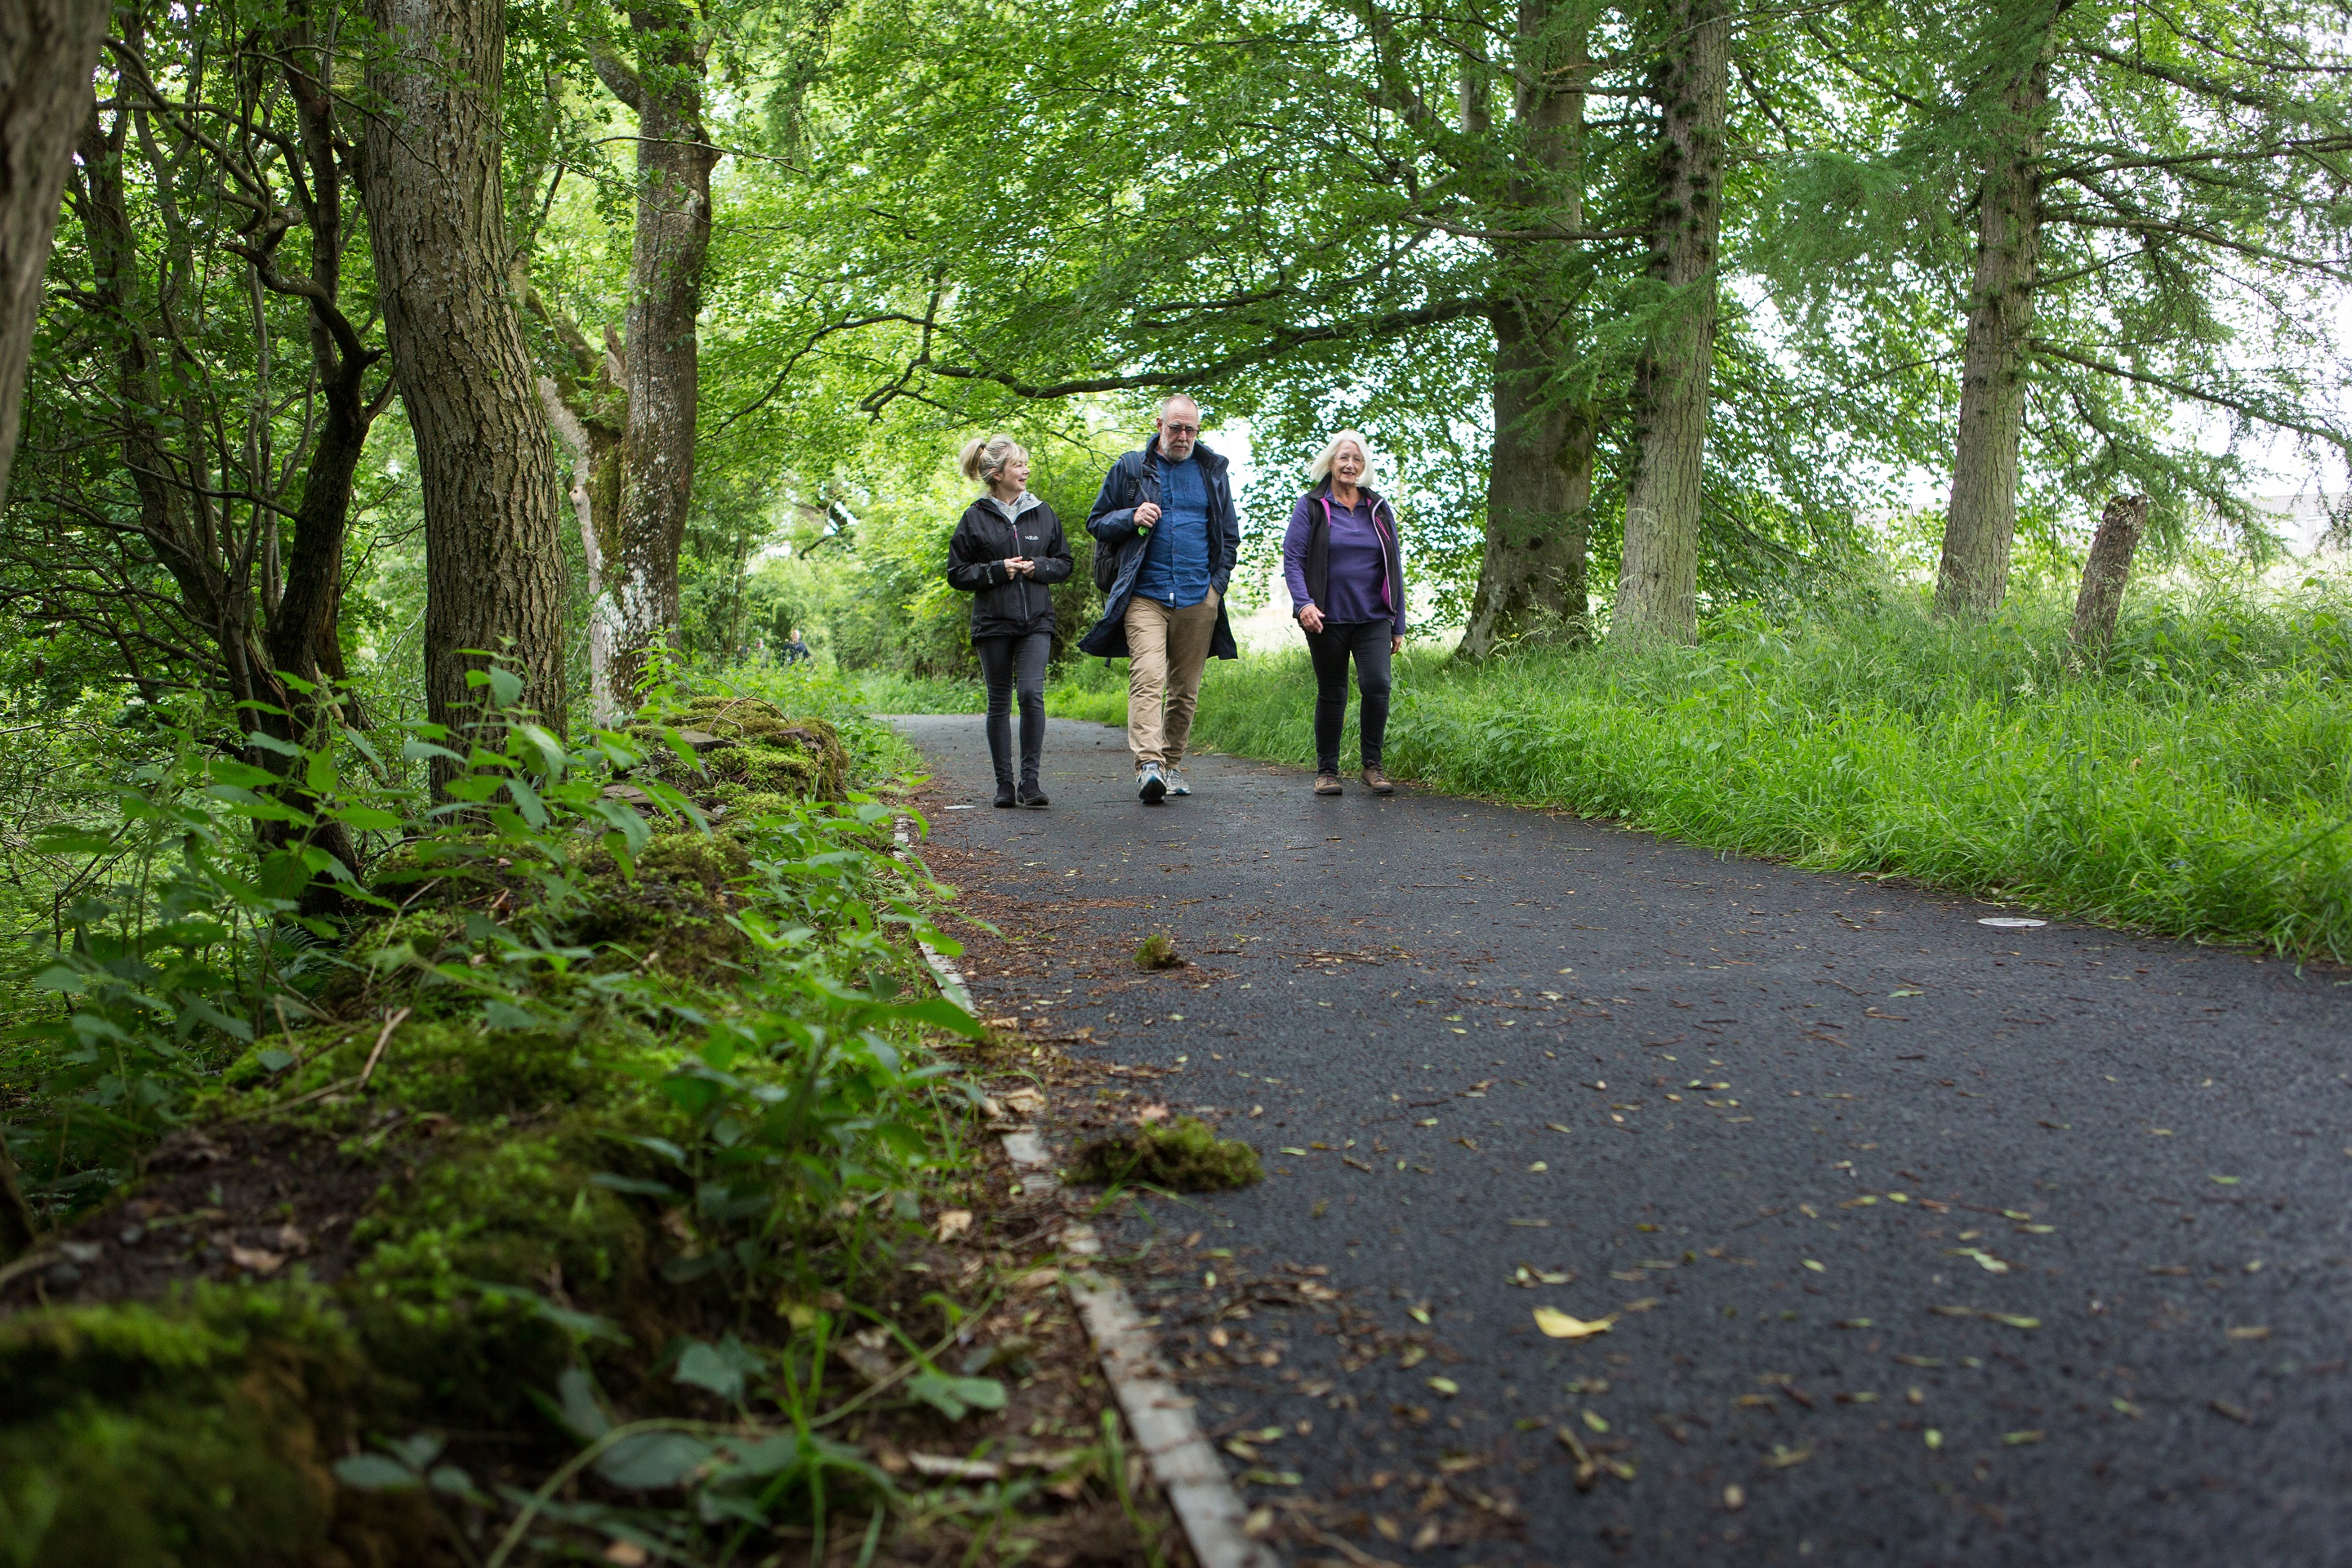 Jane Courtney, Auchterarder Core Paths Working Group, along with Stuart, former Chair of Auchterarder Community Sports Association) and Alison Bonney walk along the upgraded Provost Walk ©PKCT